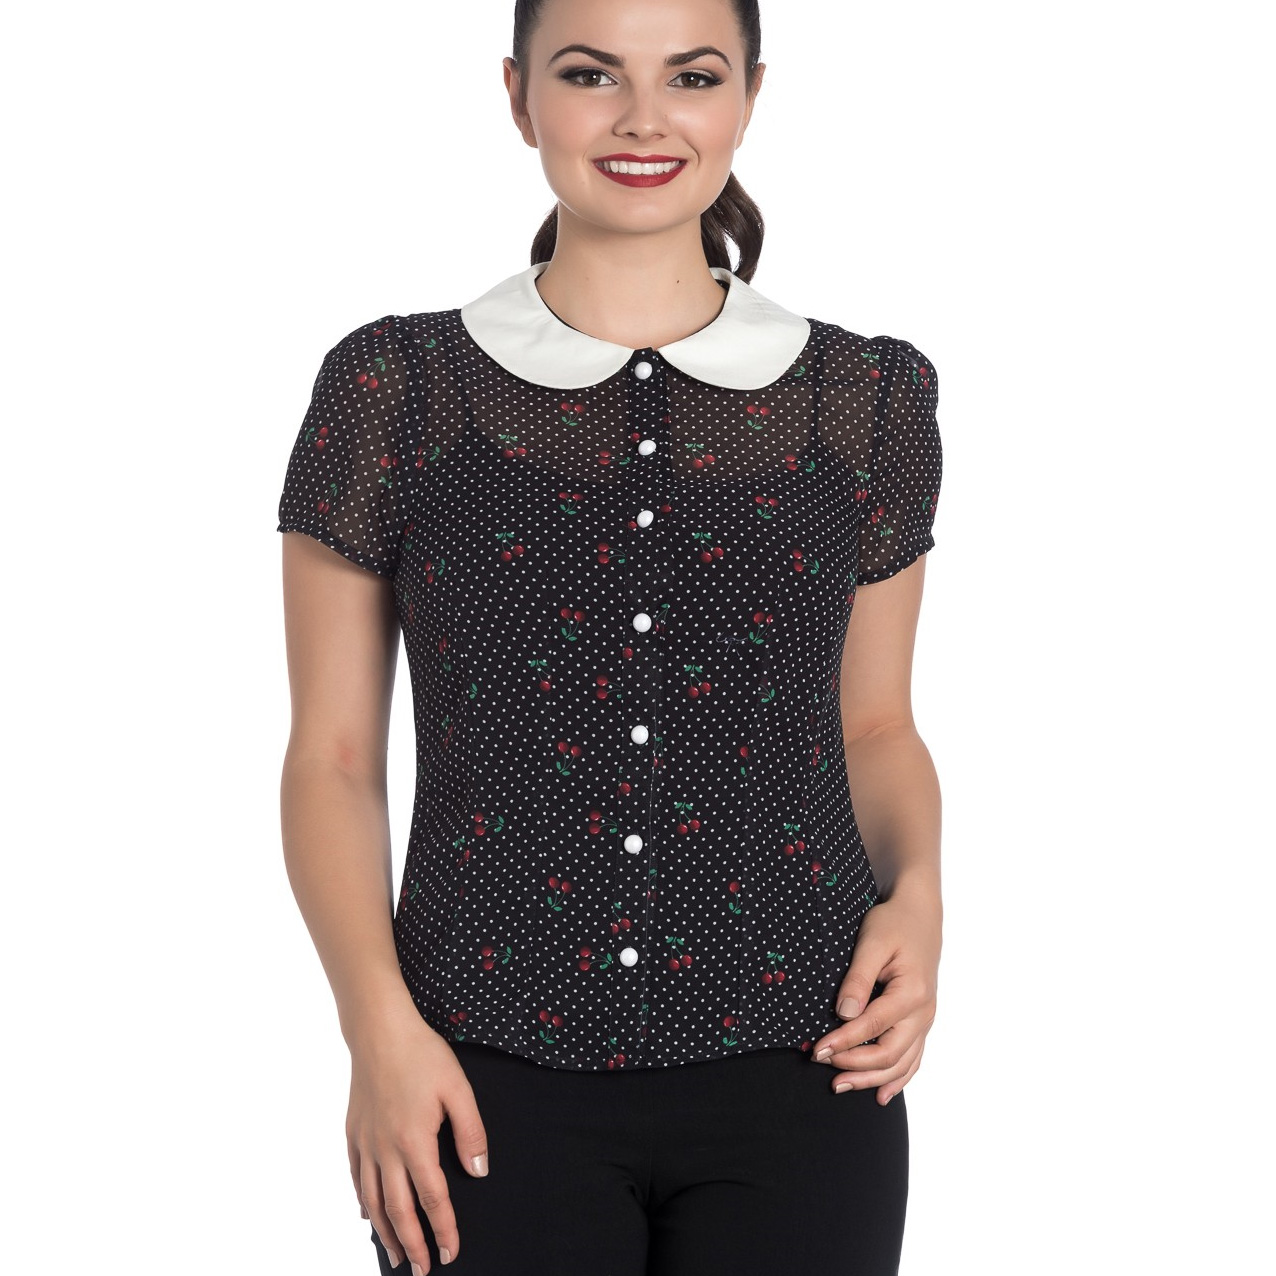 Hell-Bunny-Shirt-Top-Black-50s-Polka-Dot-SOPHIE-Blouse-Cherries-Cherry-All-Sizes thumbnail 7